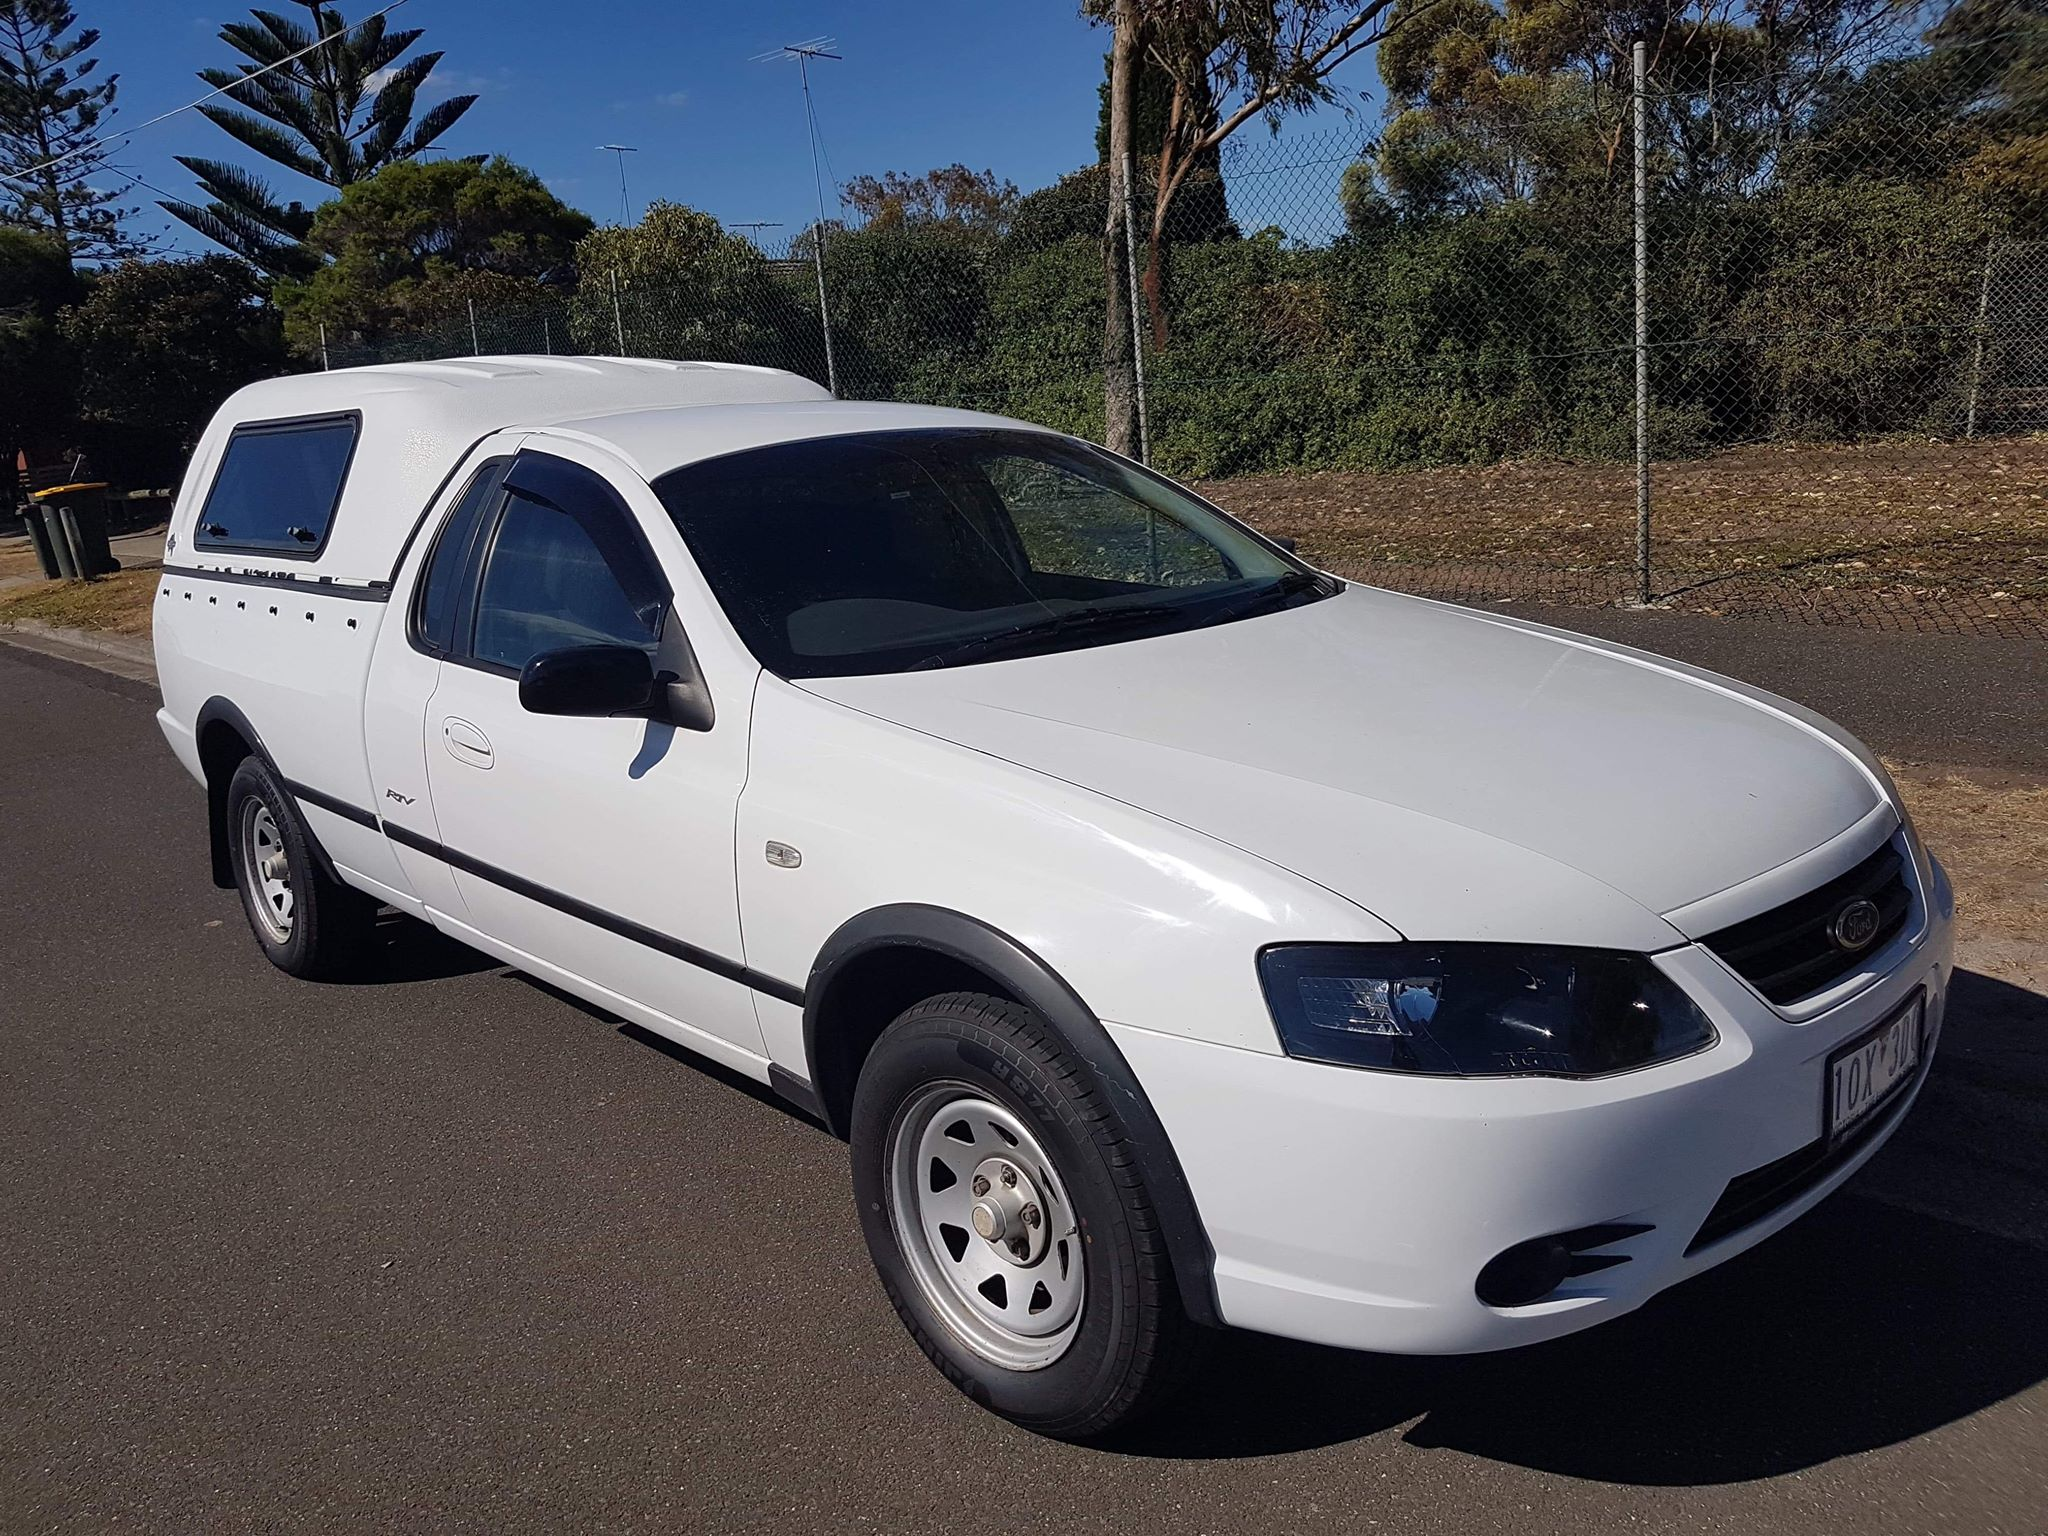 Picture of Damian's 2007 Ford UTE